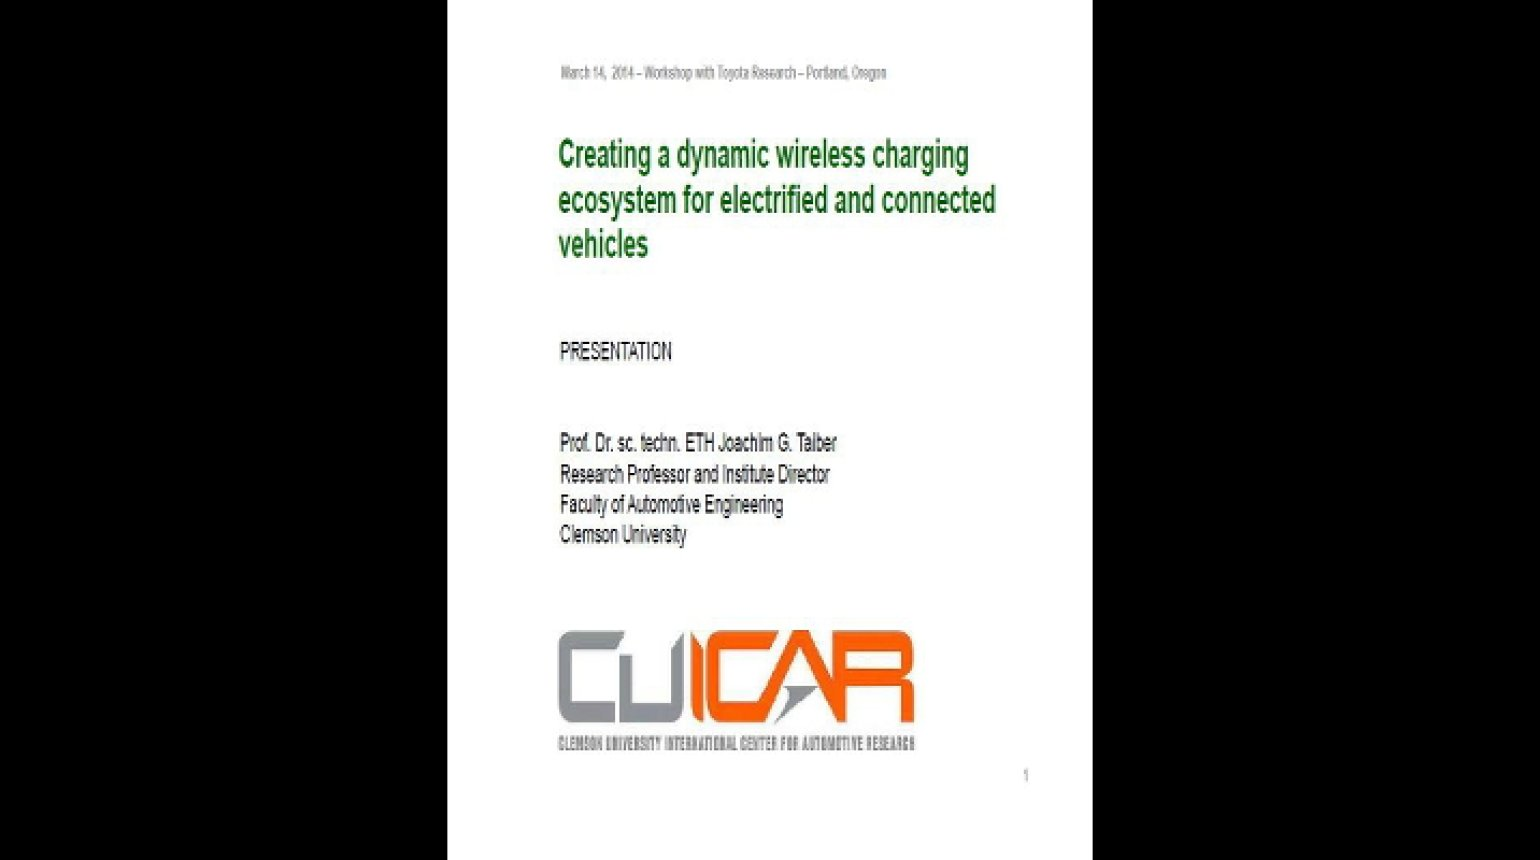 Video - How to Create an Ecosystem for Dynamic Wireless Charging of Electrified Vehicles